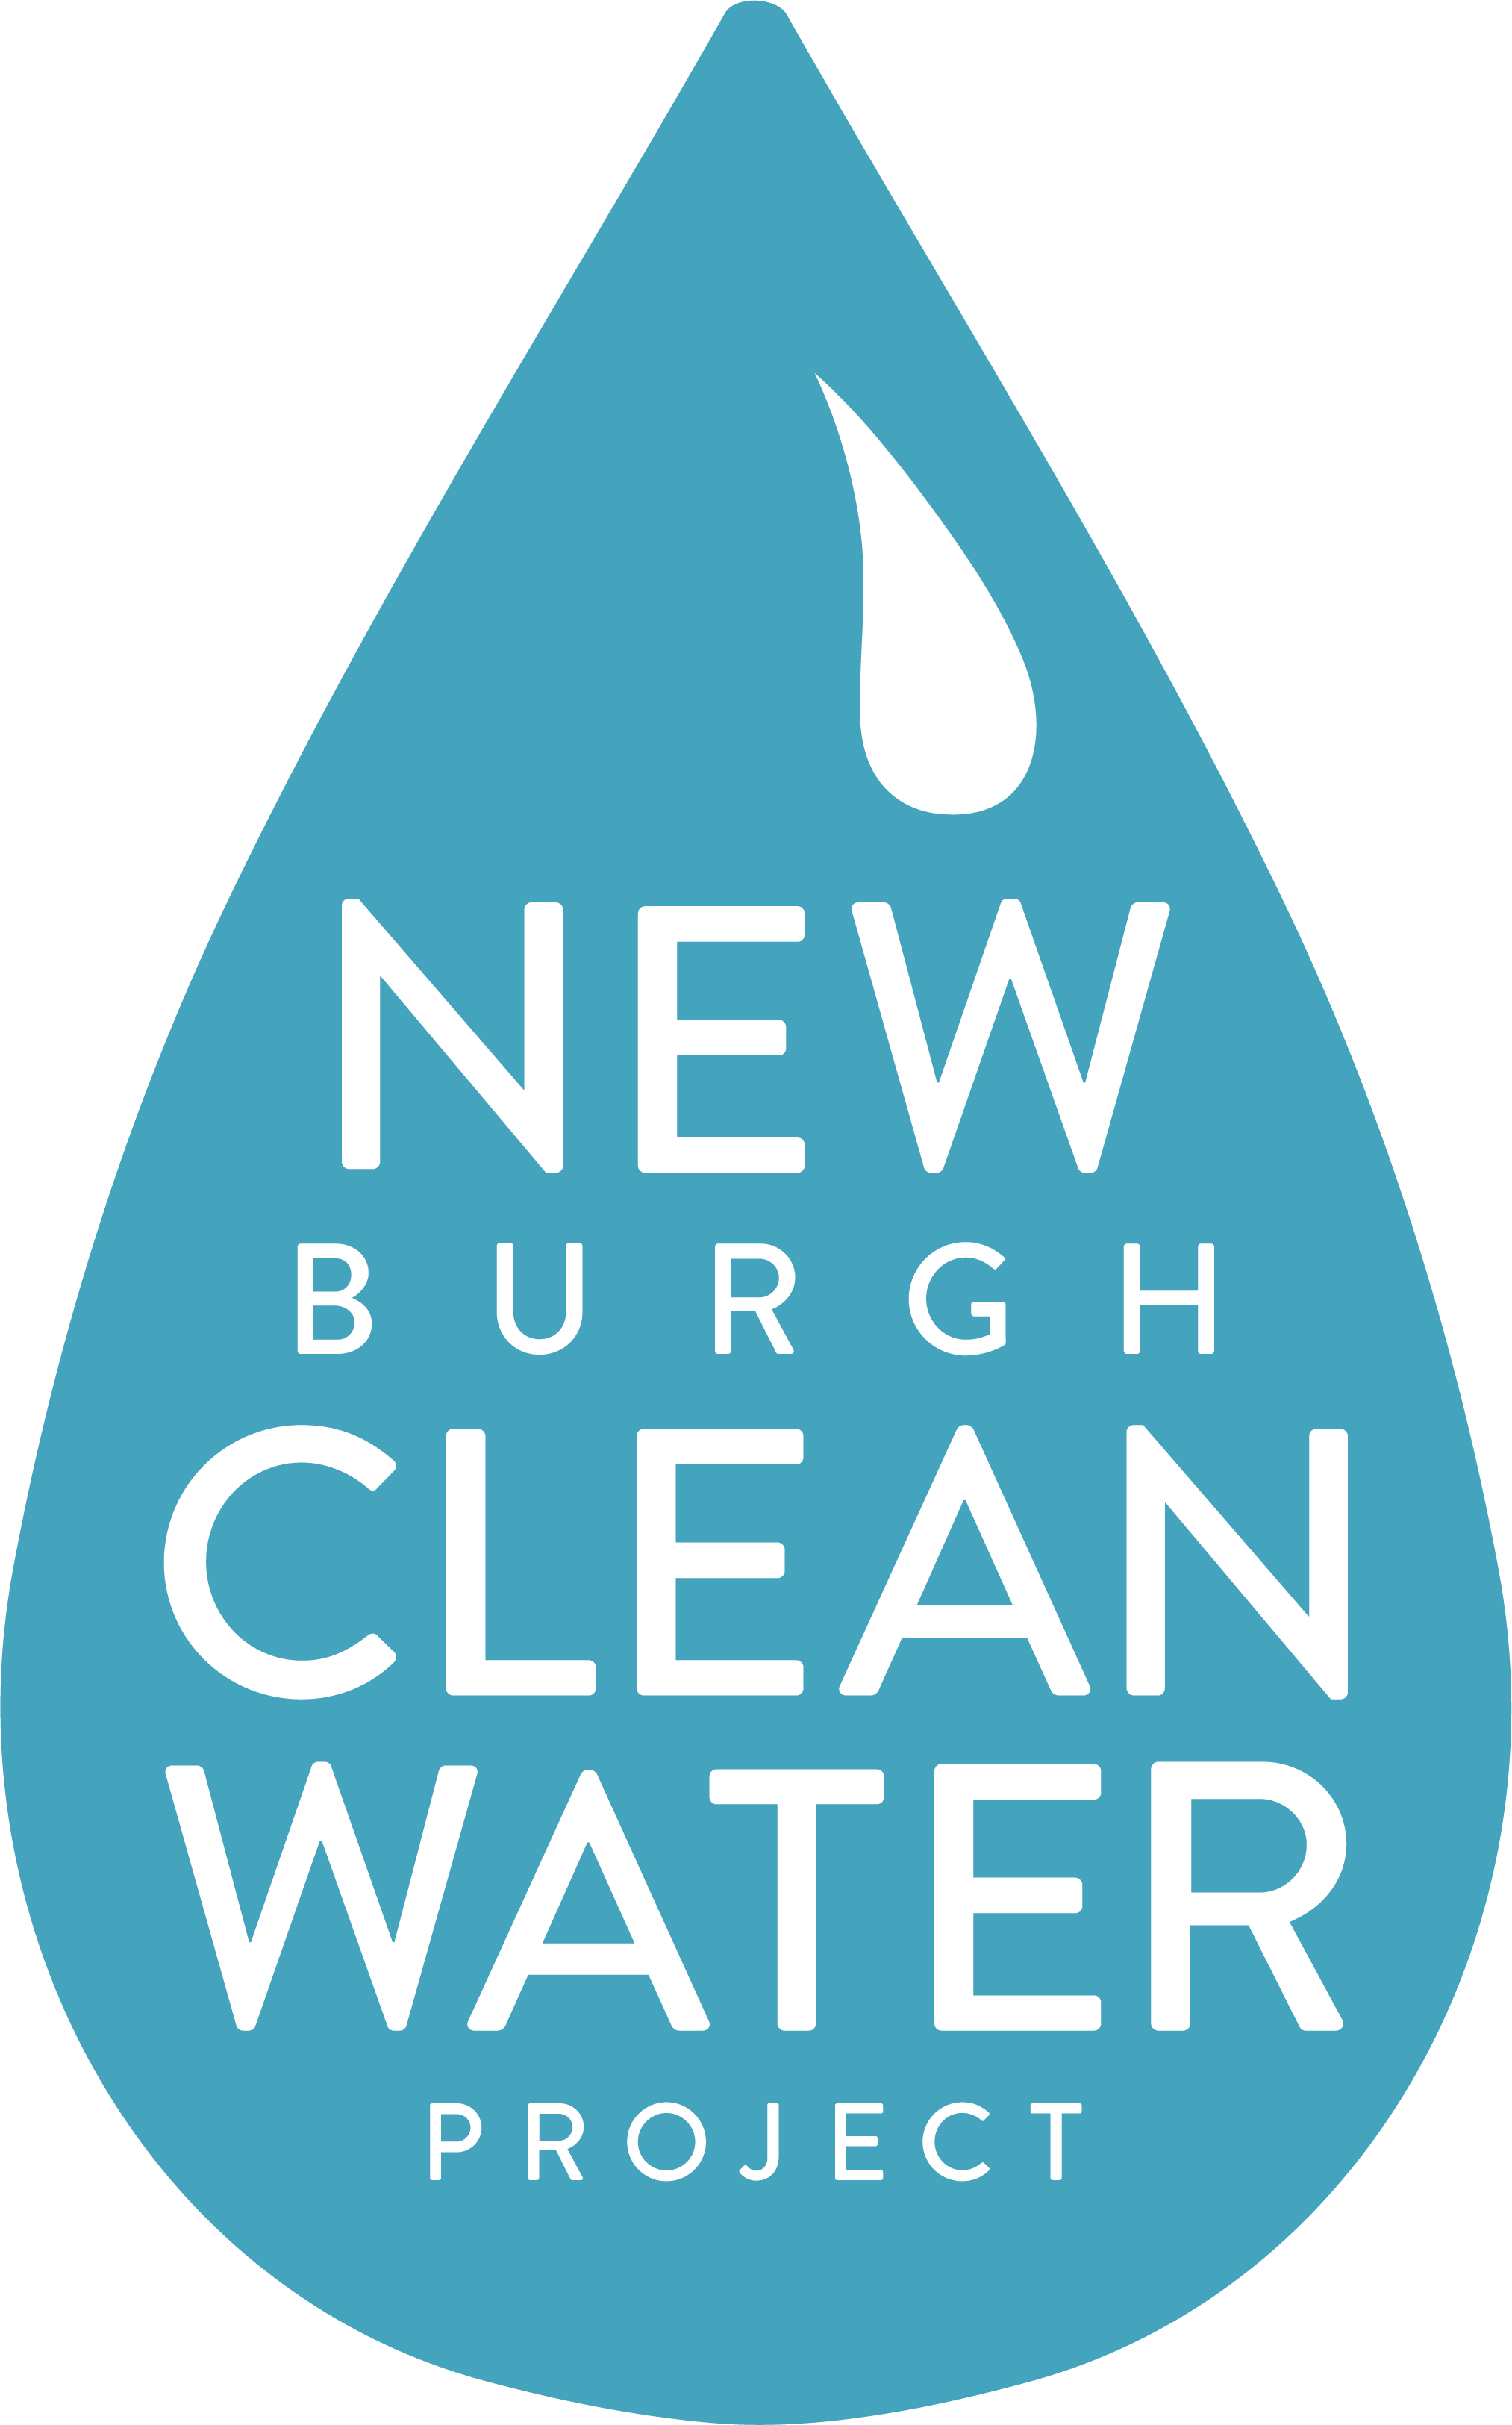 Newburgh Clean Water Project